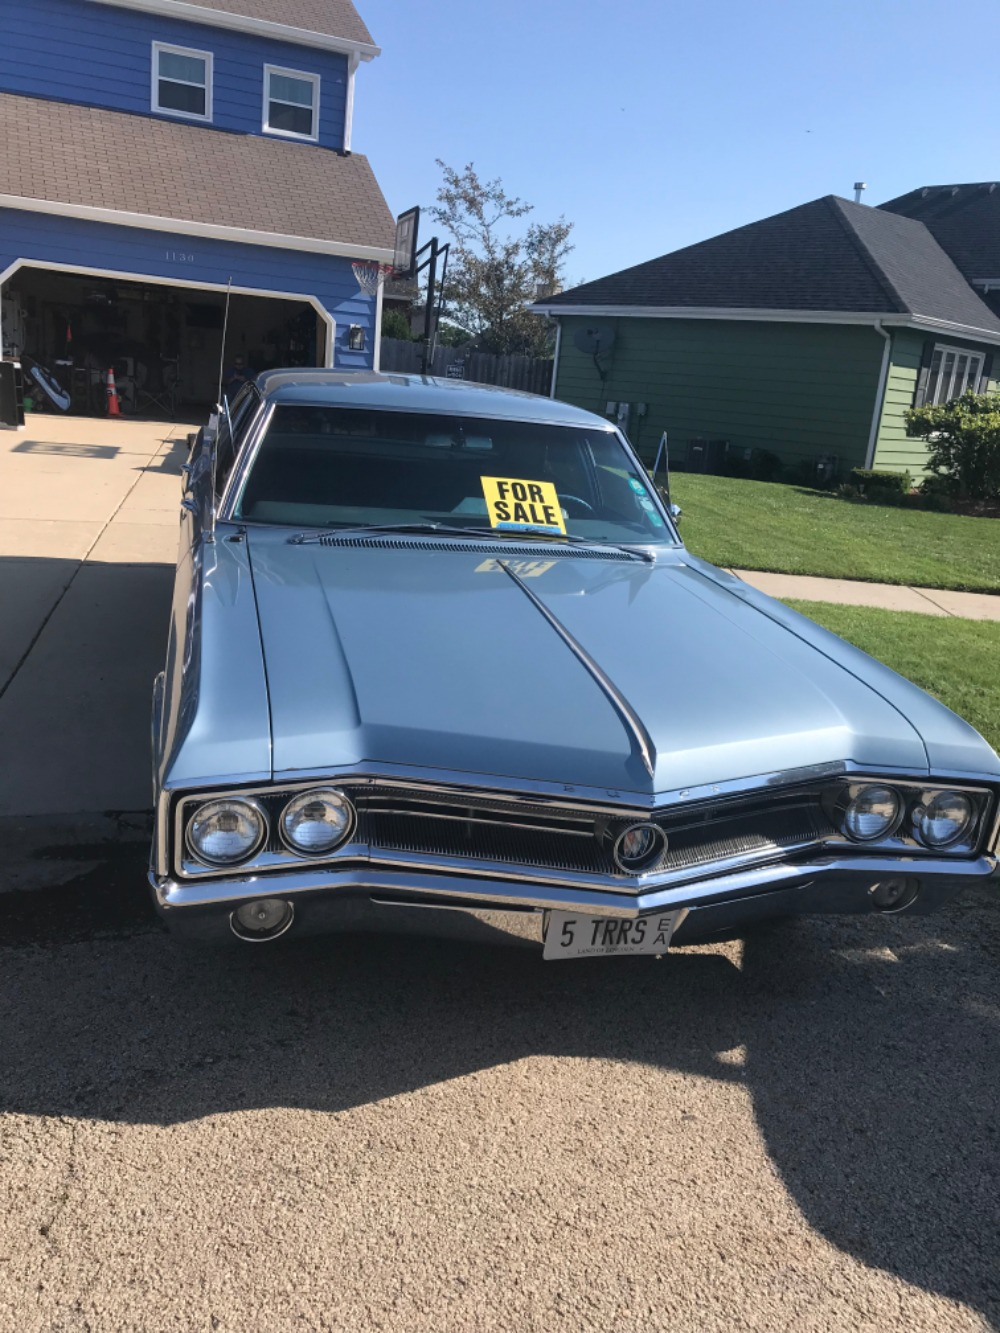 Used 1965 Buick Wildcat -BIG BLOCK CHEVY -SUPER SLEEPER- Family Cruiser!! | Mundelein, IL